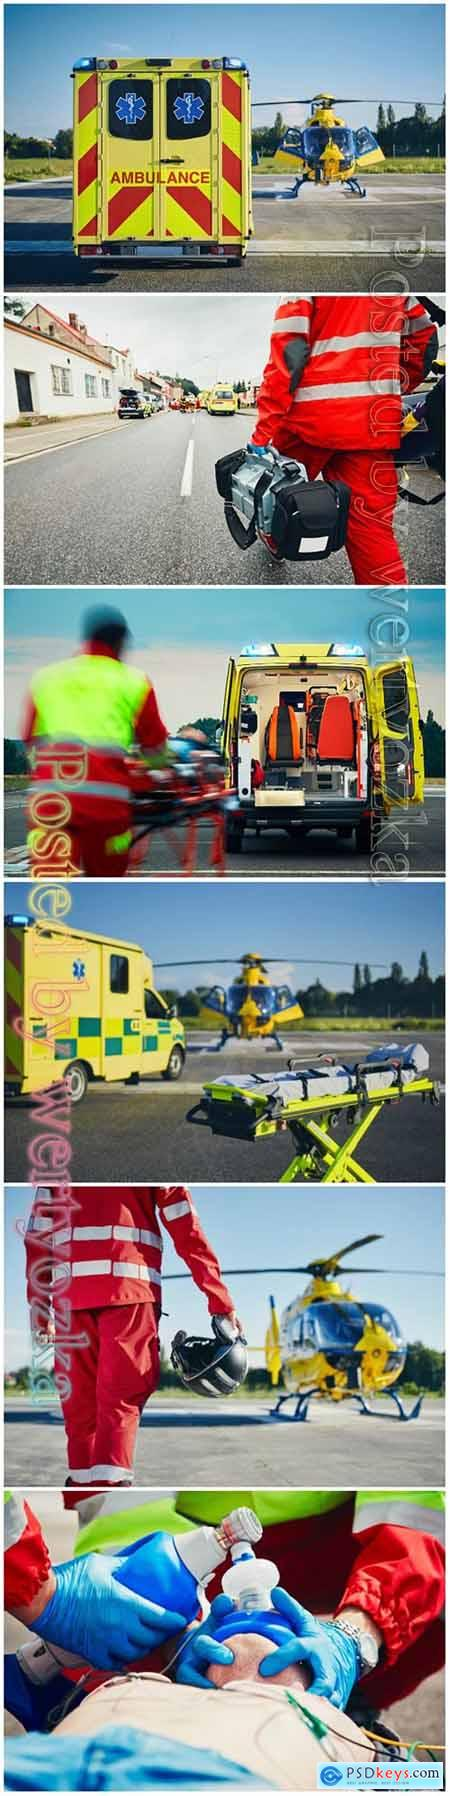 Emergency medical service beautiful stock photo